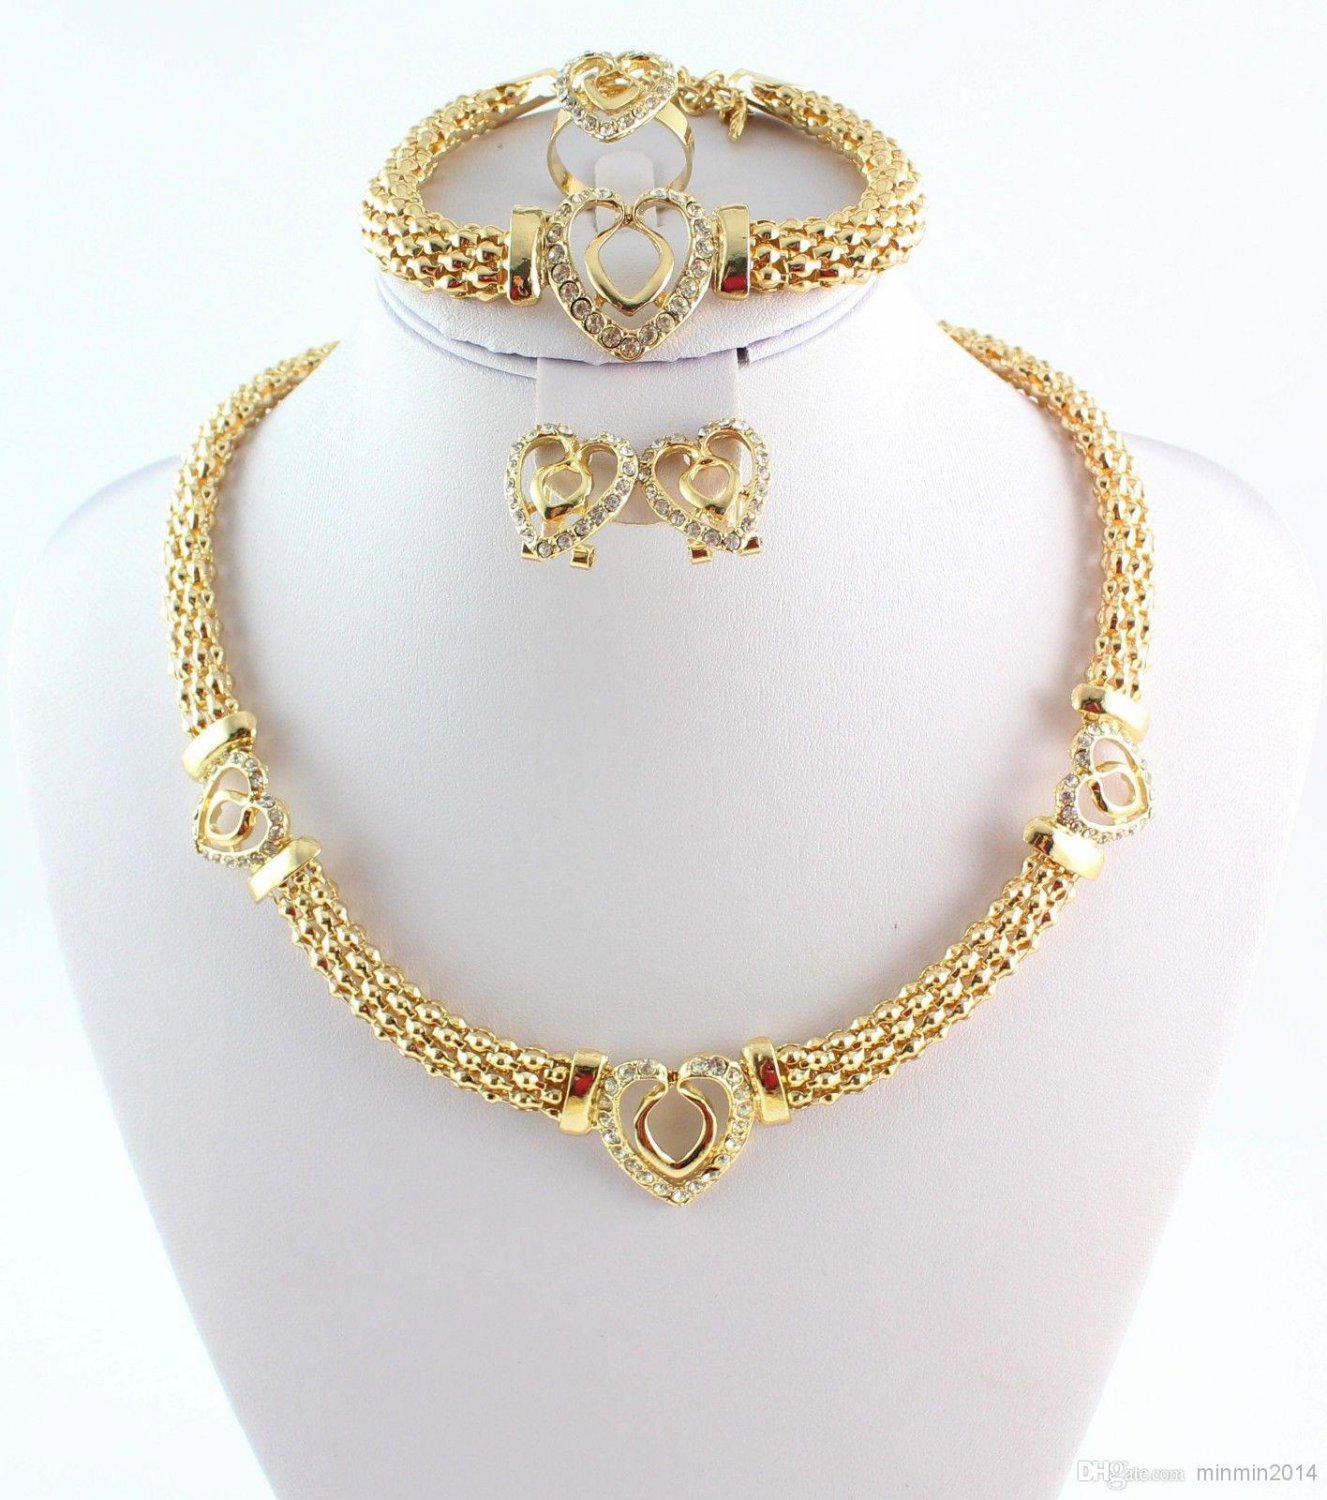 4 piece jewelry set